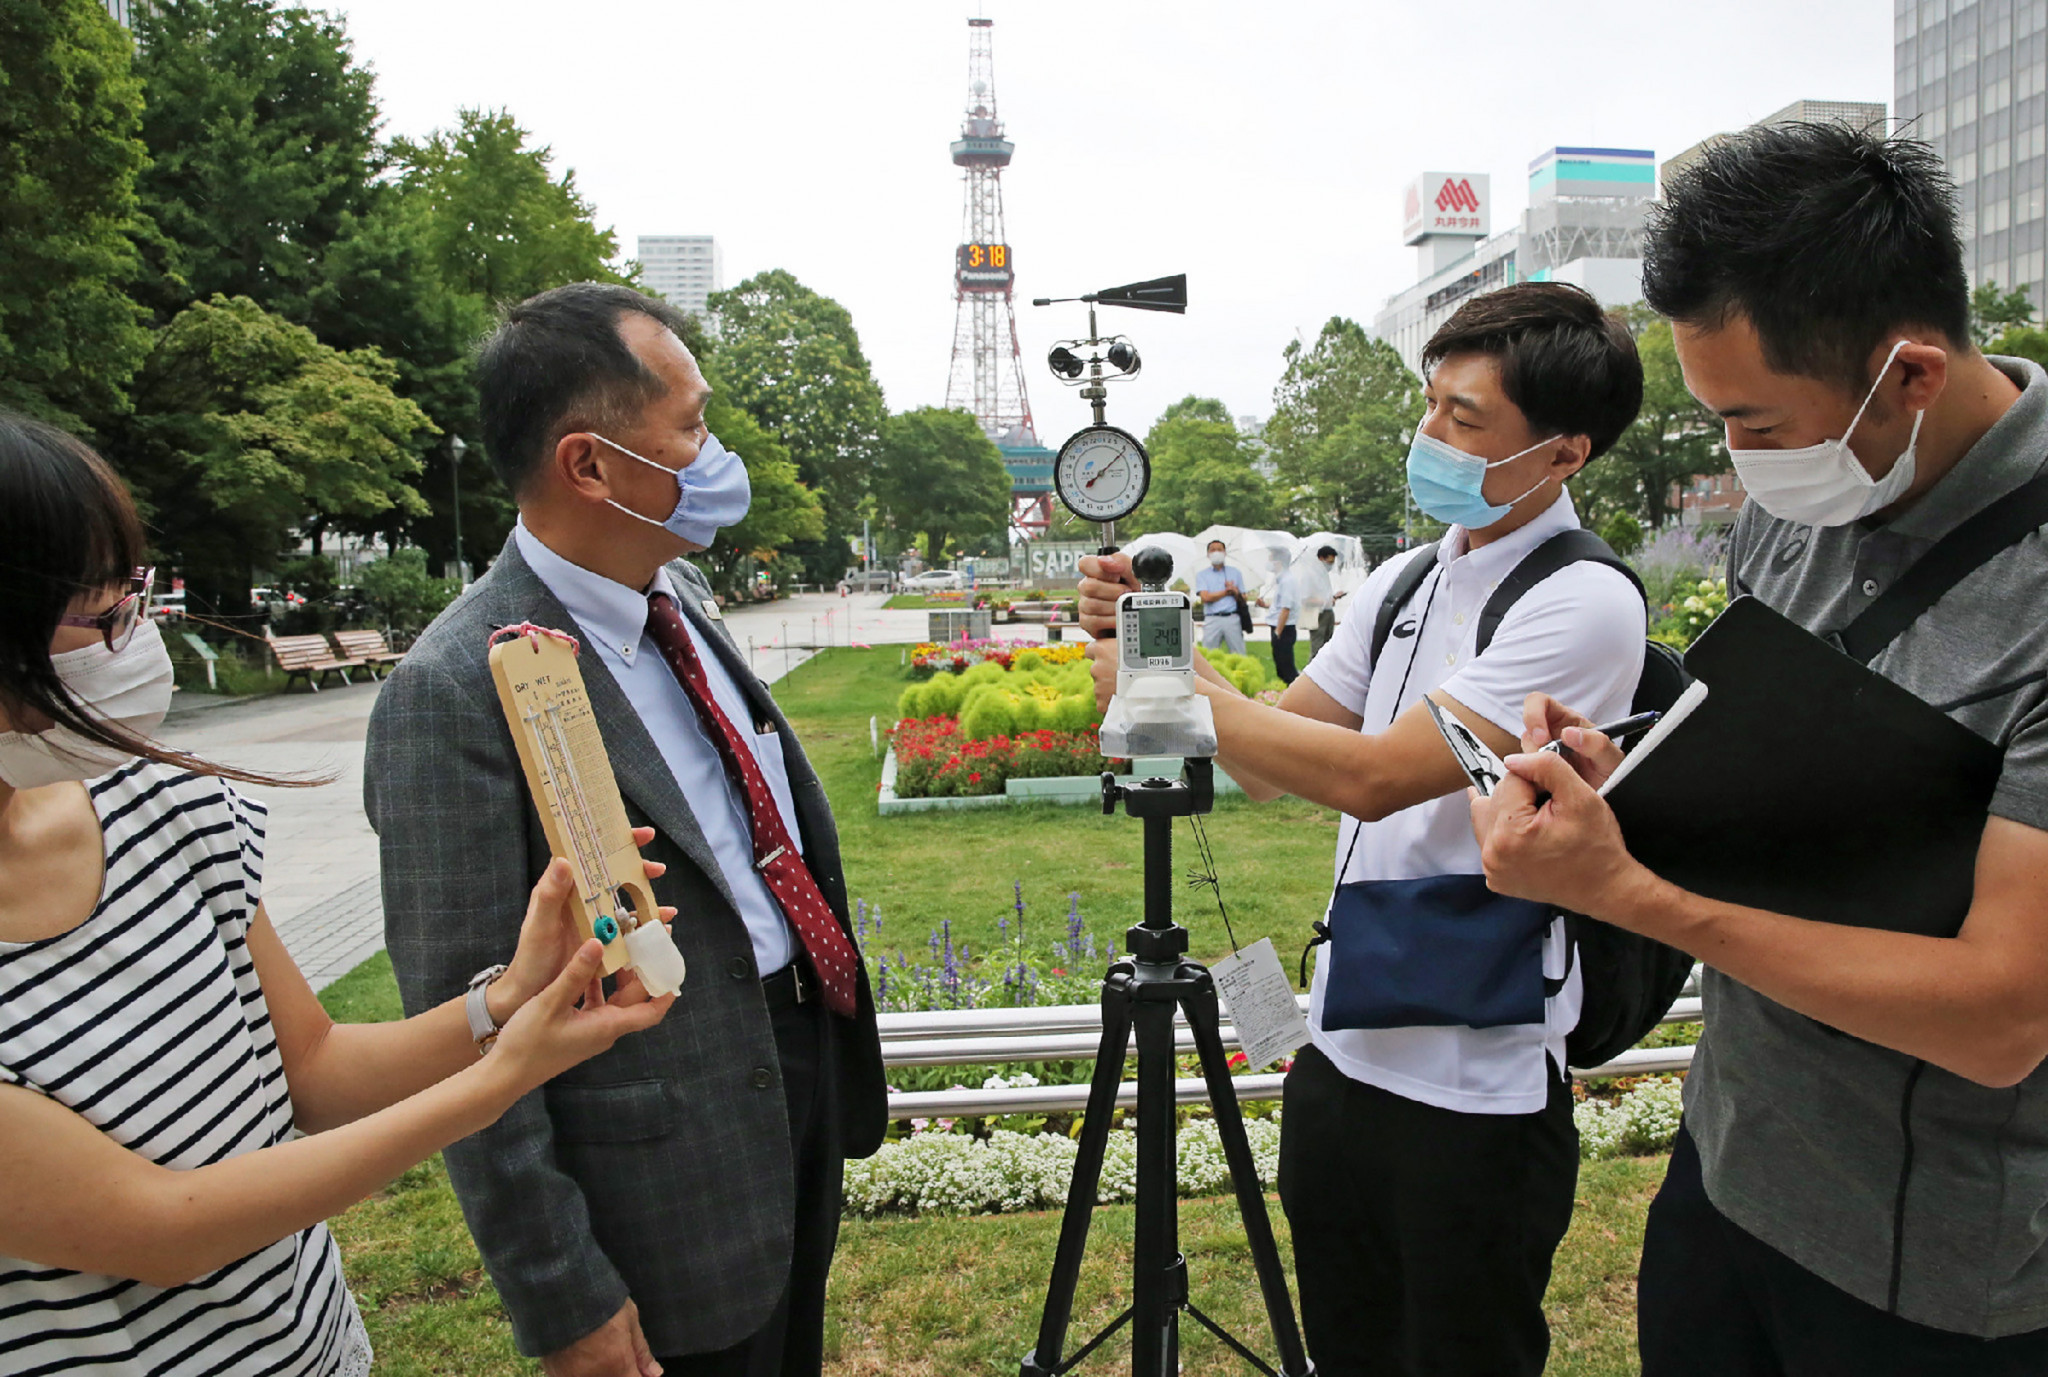 Air quality was among the aspects measured during a visit by World Athletics officials to Sapporo, which will host the Olympic Games marathon and race walk events next year ©Getty Images